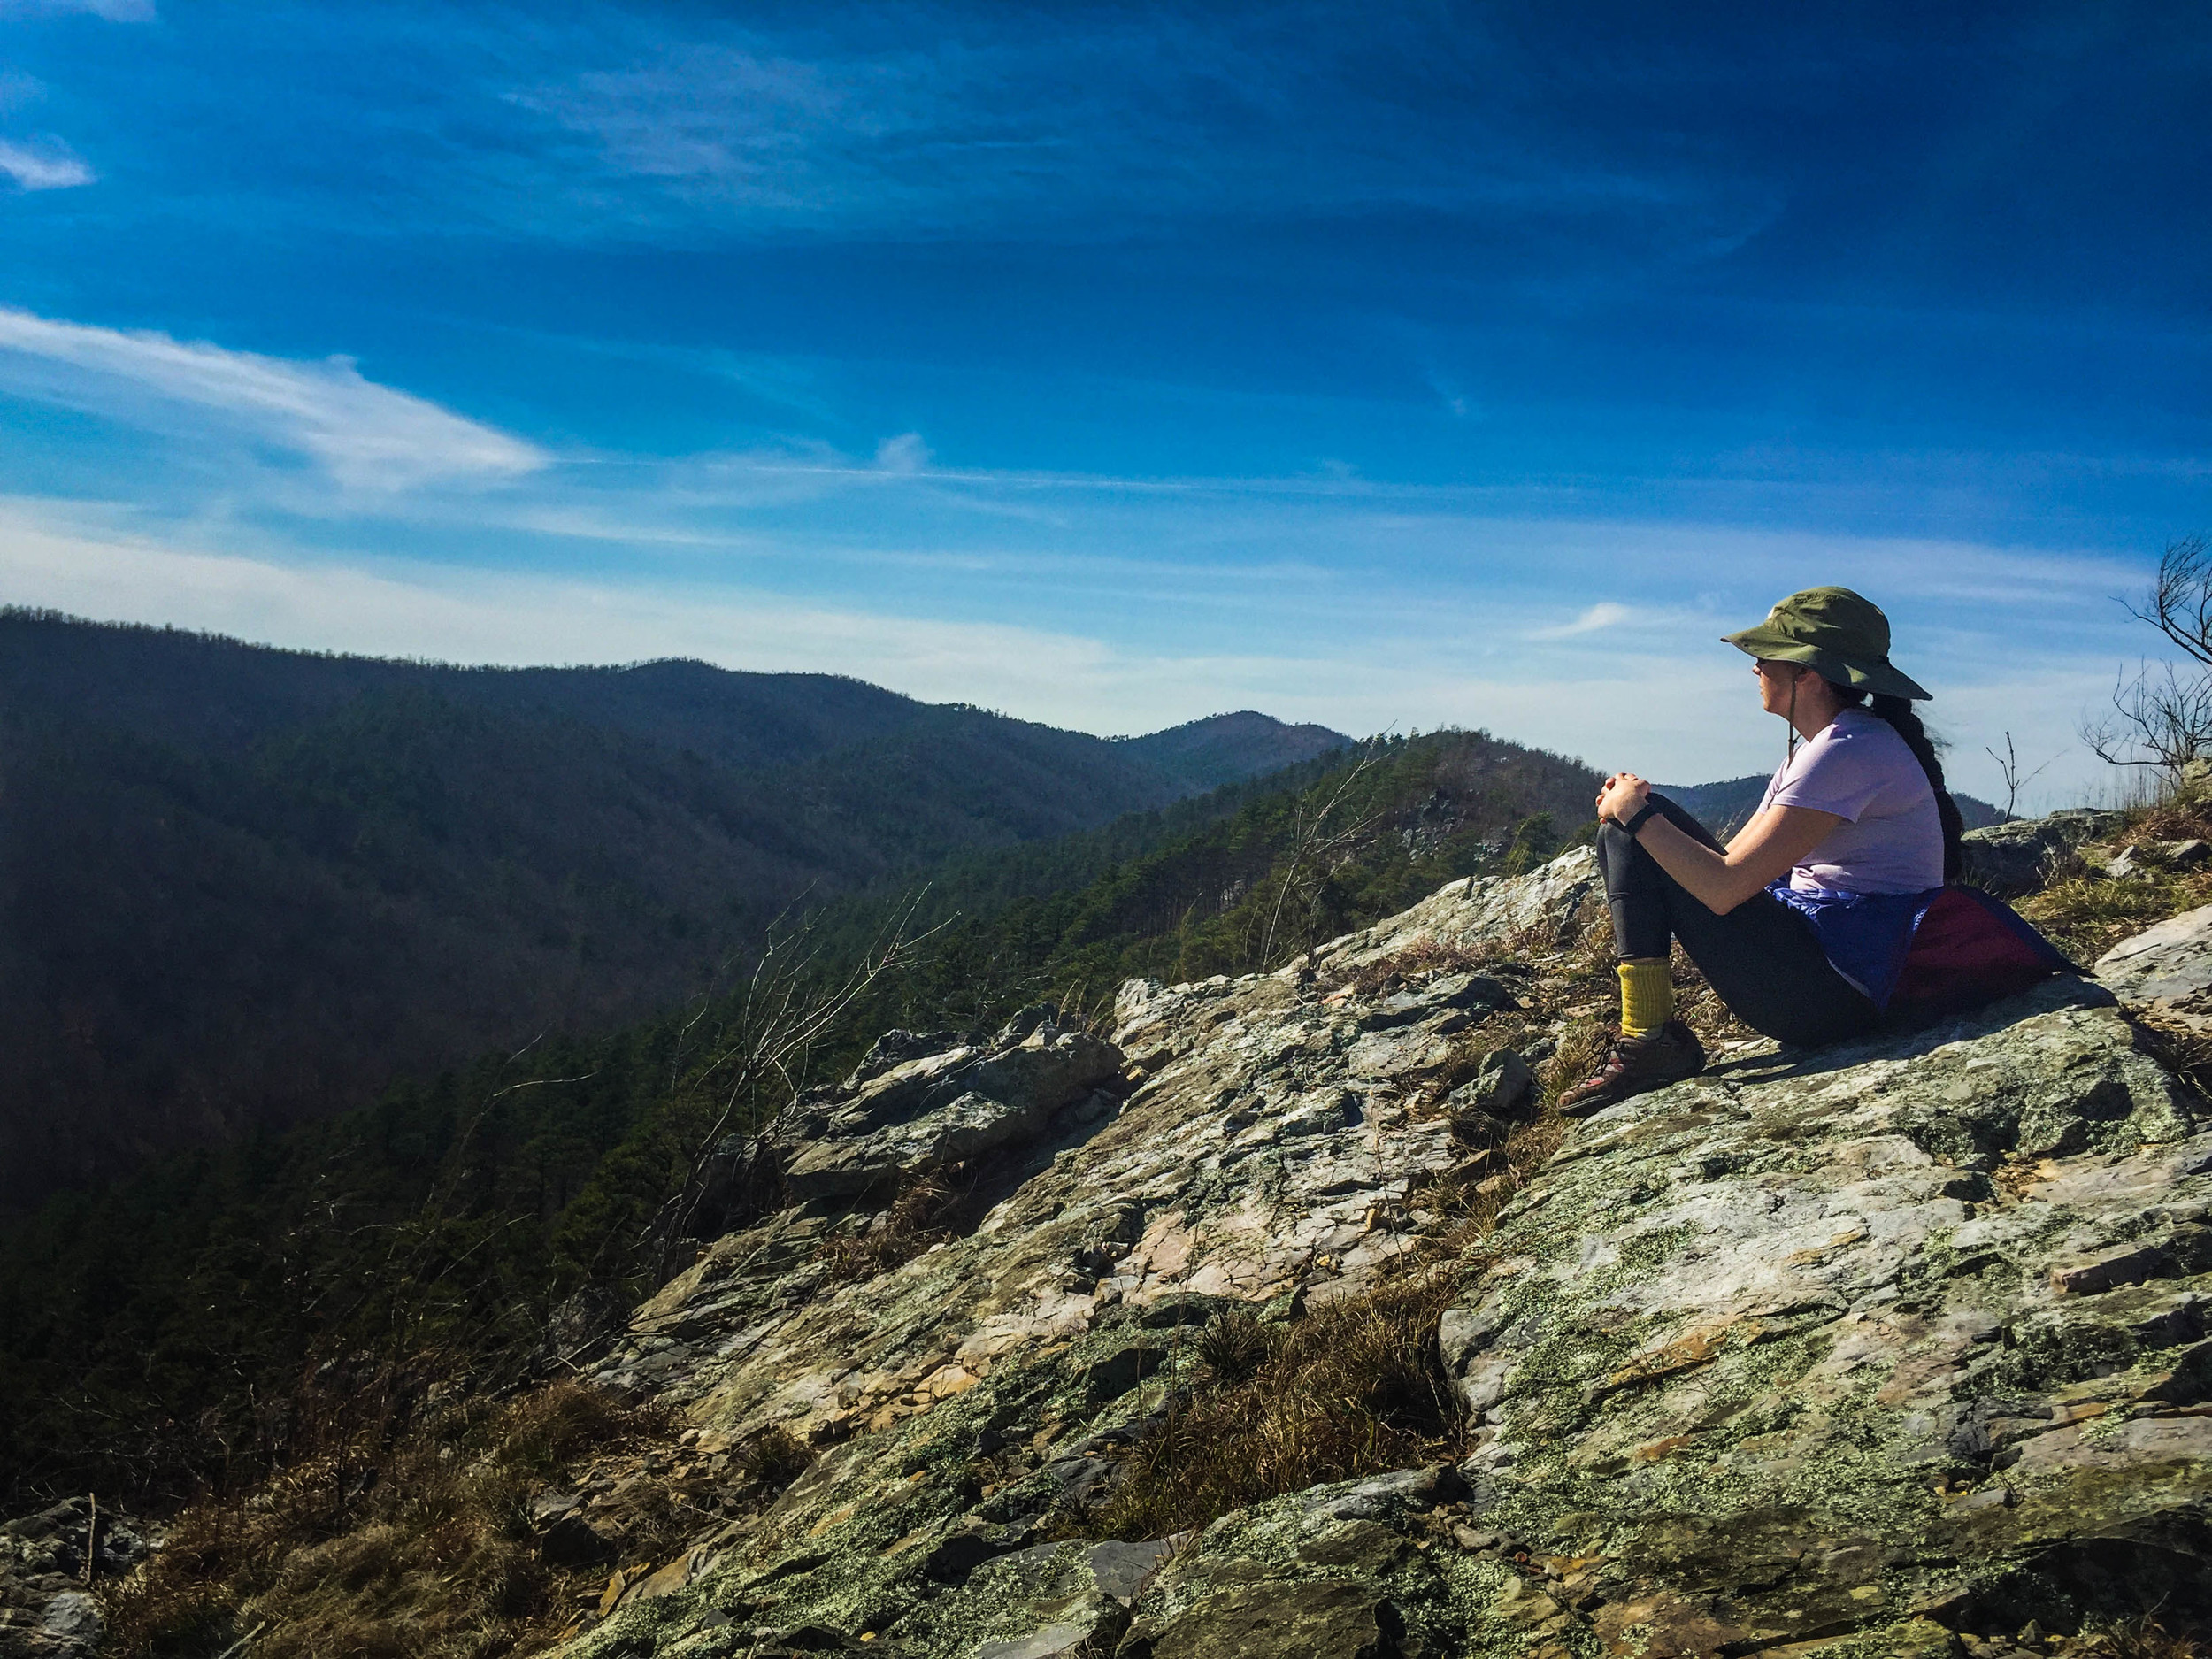 Eagle Rock Loop Trail offers unspoiled views of the green Ouachita hills.